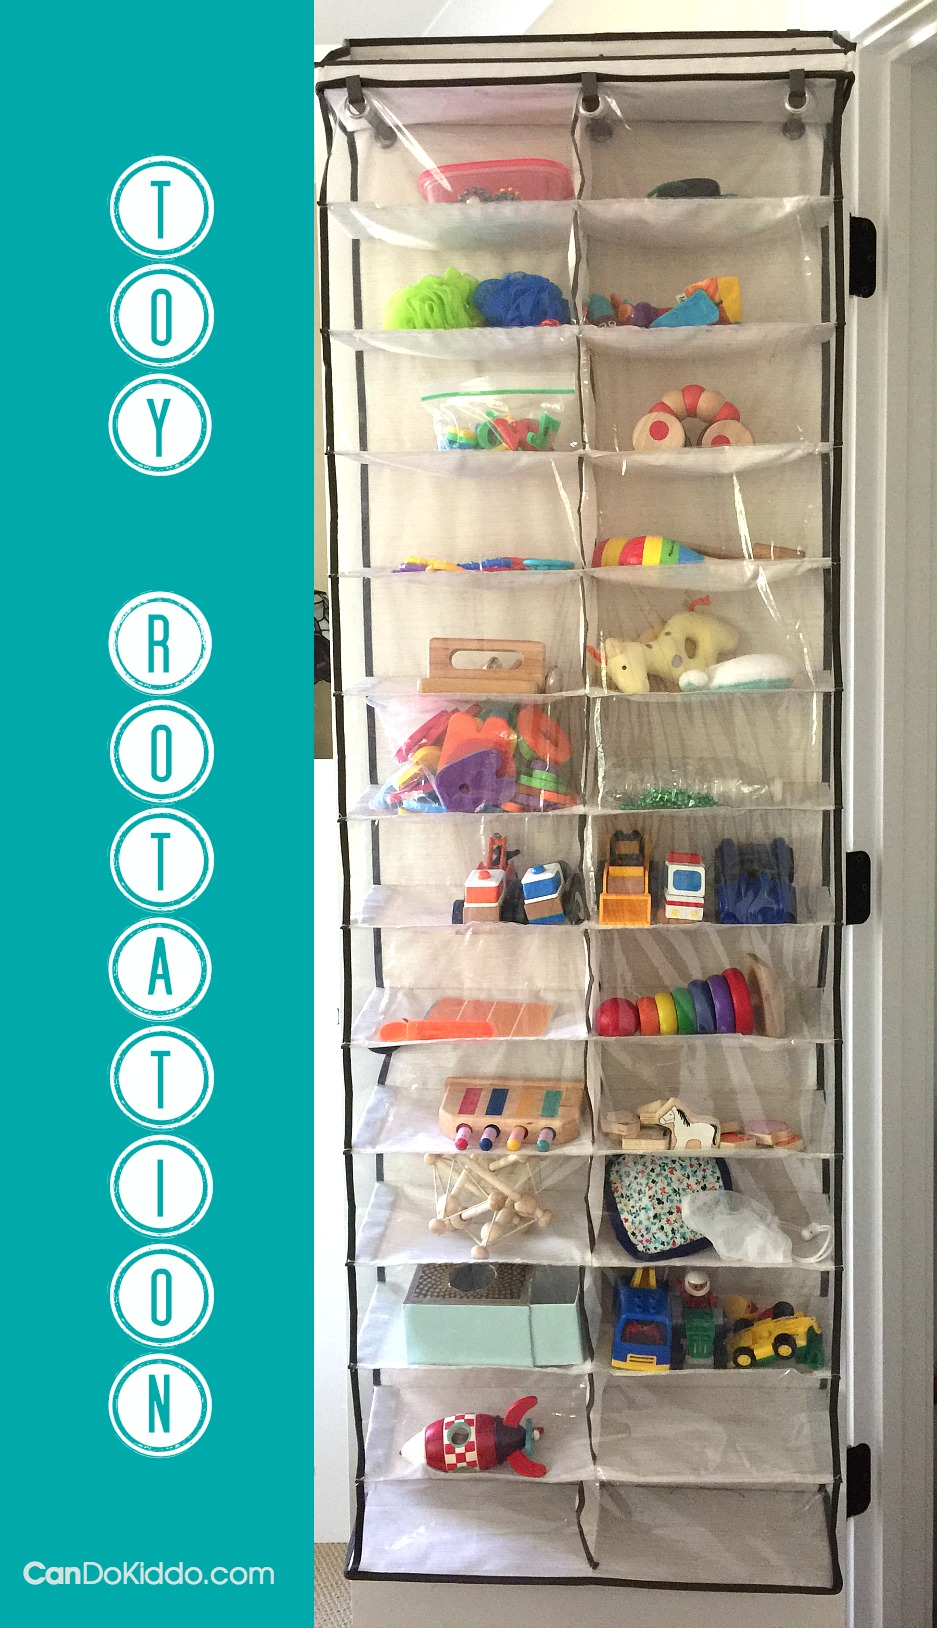 Shoe storage used for storing toys - toy rotation. CanDo Kiddo